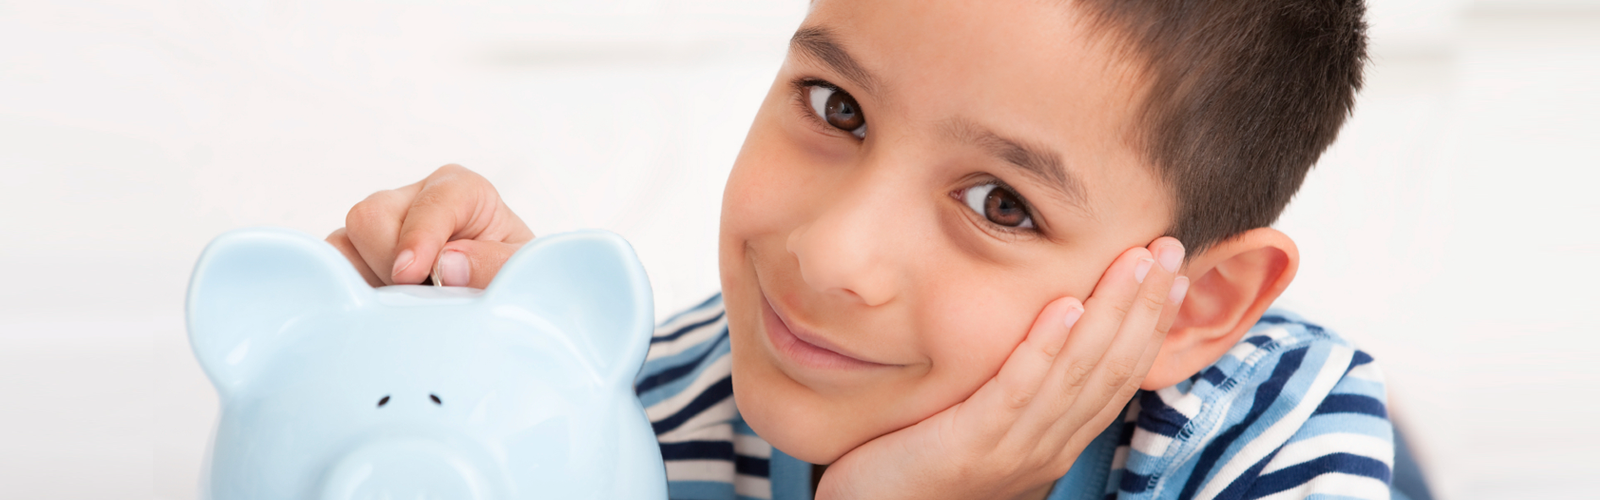 Child care and daycare assistance in North Dakota